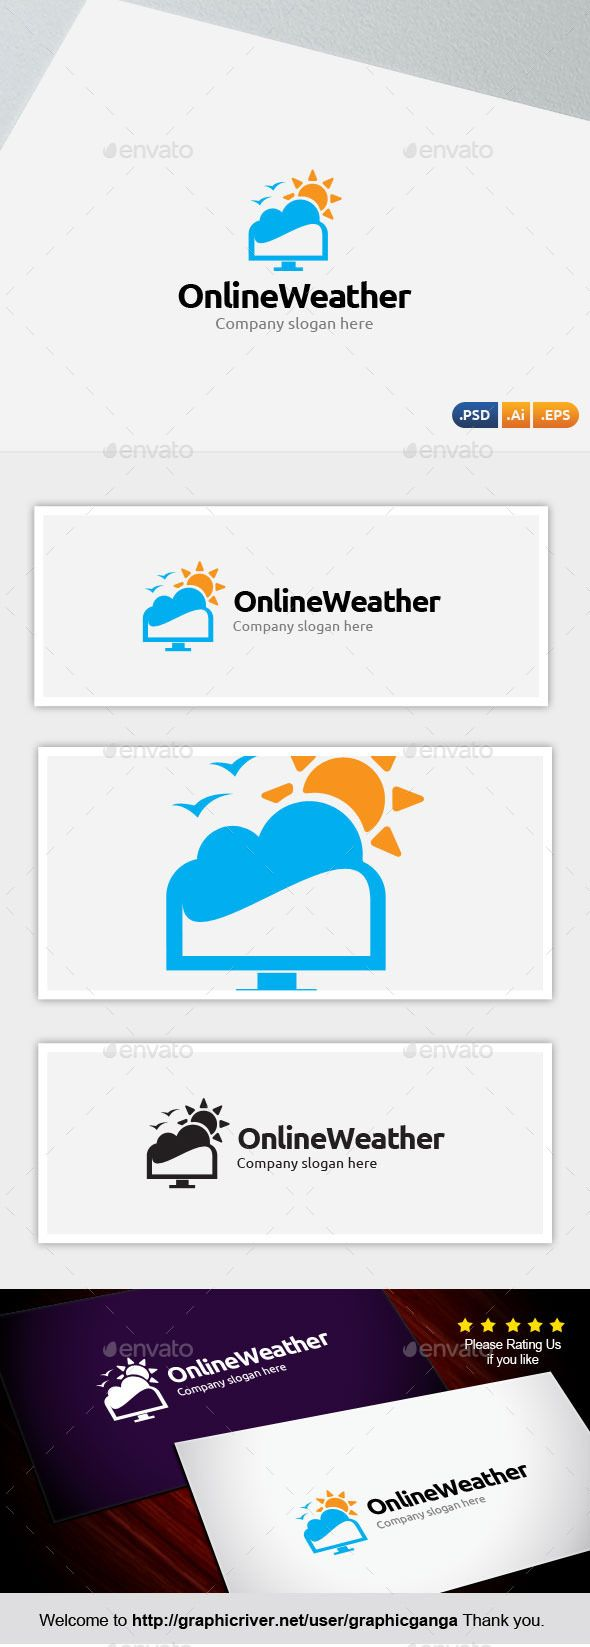 Invert color jpg online - Online Weather